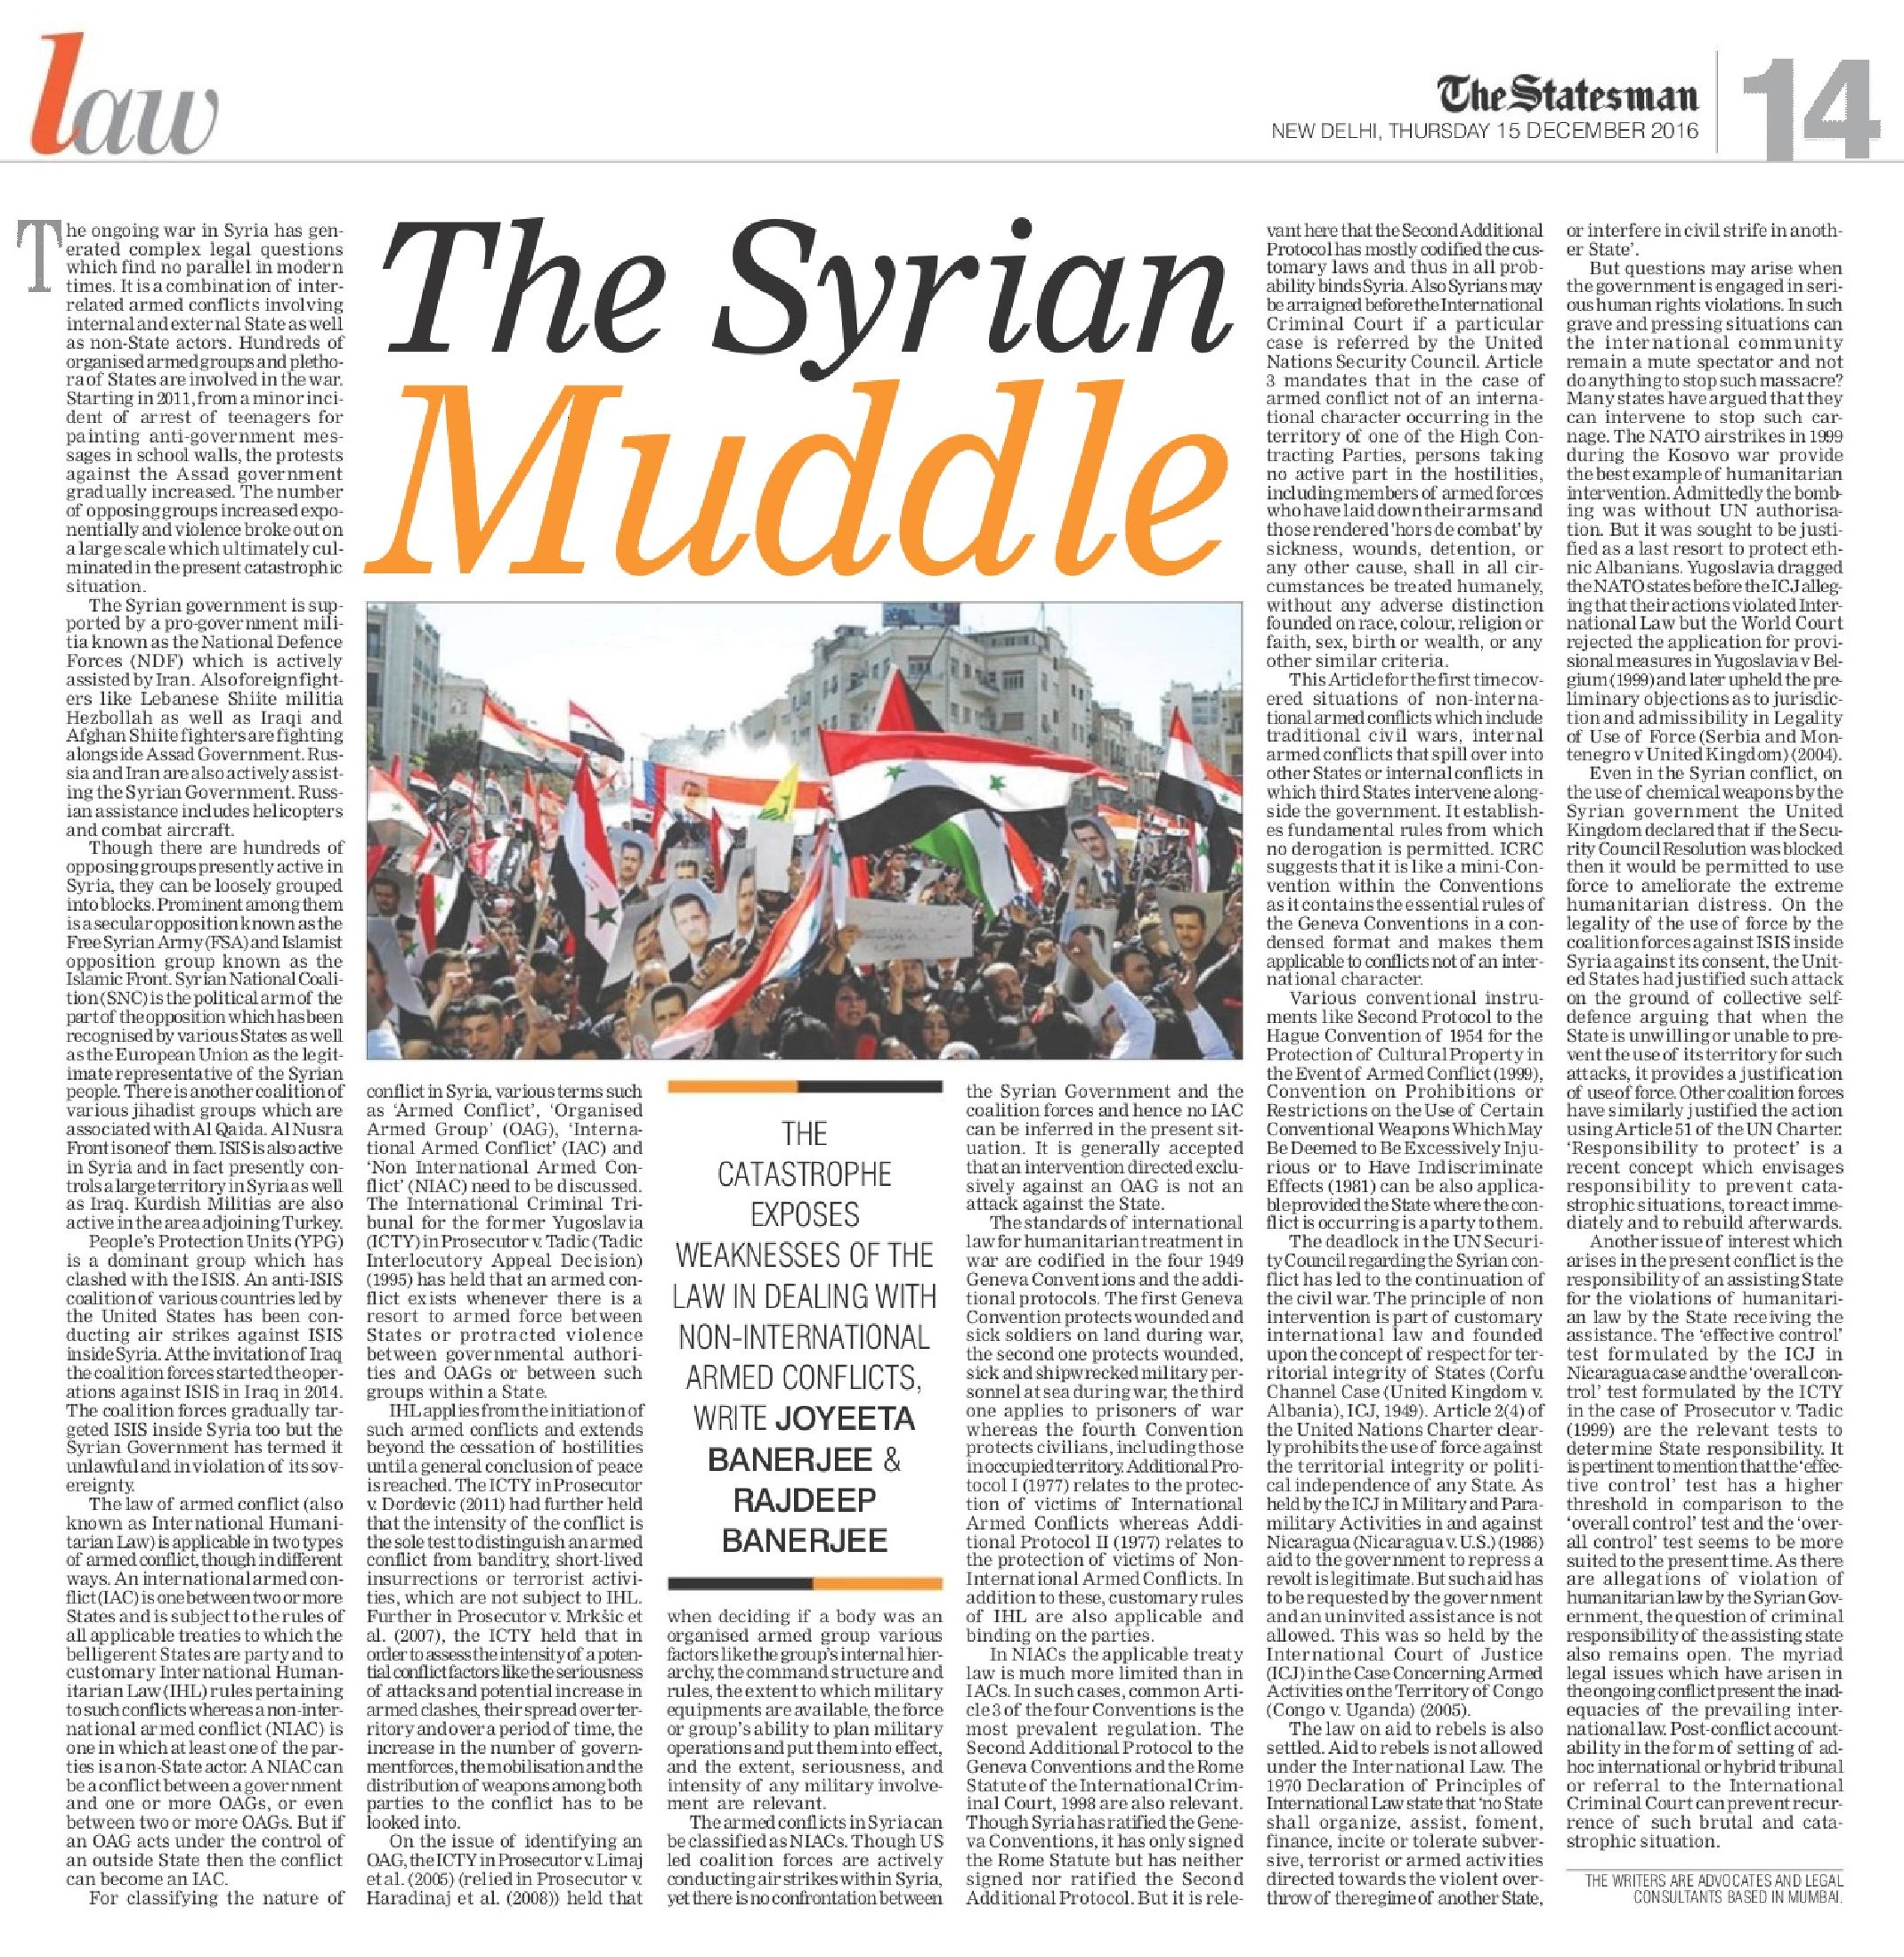 TheSyrianMuddle